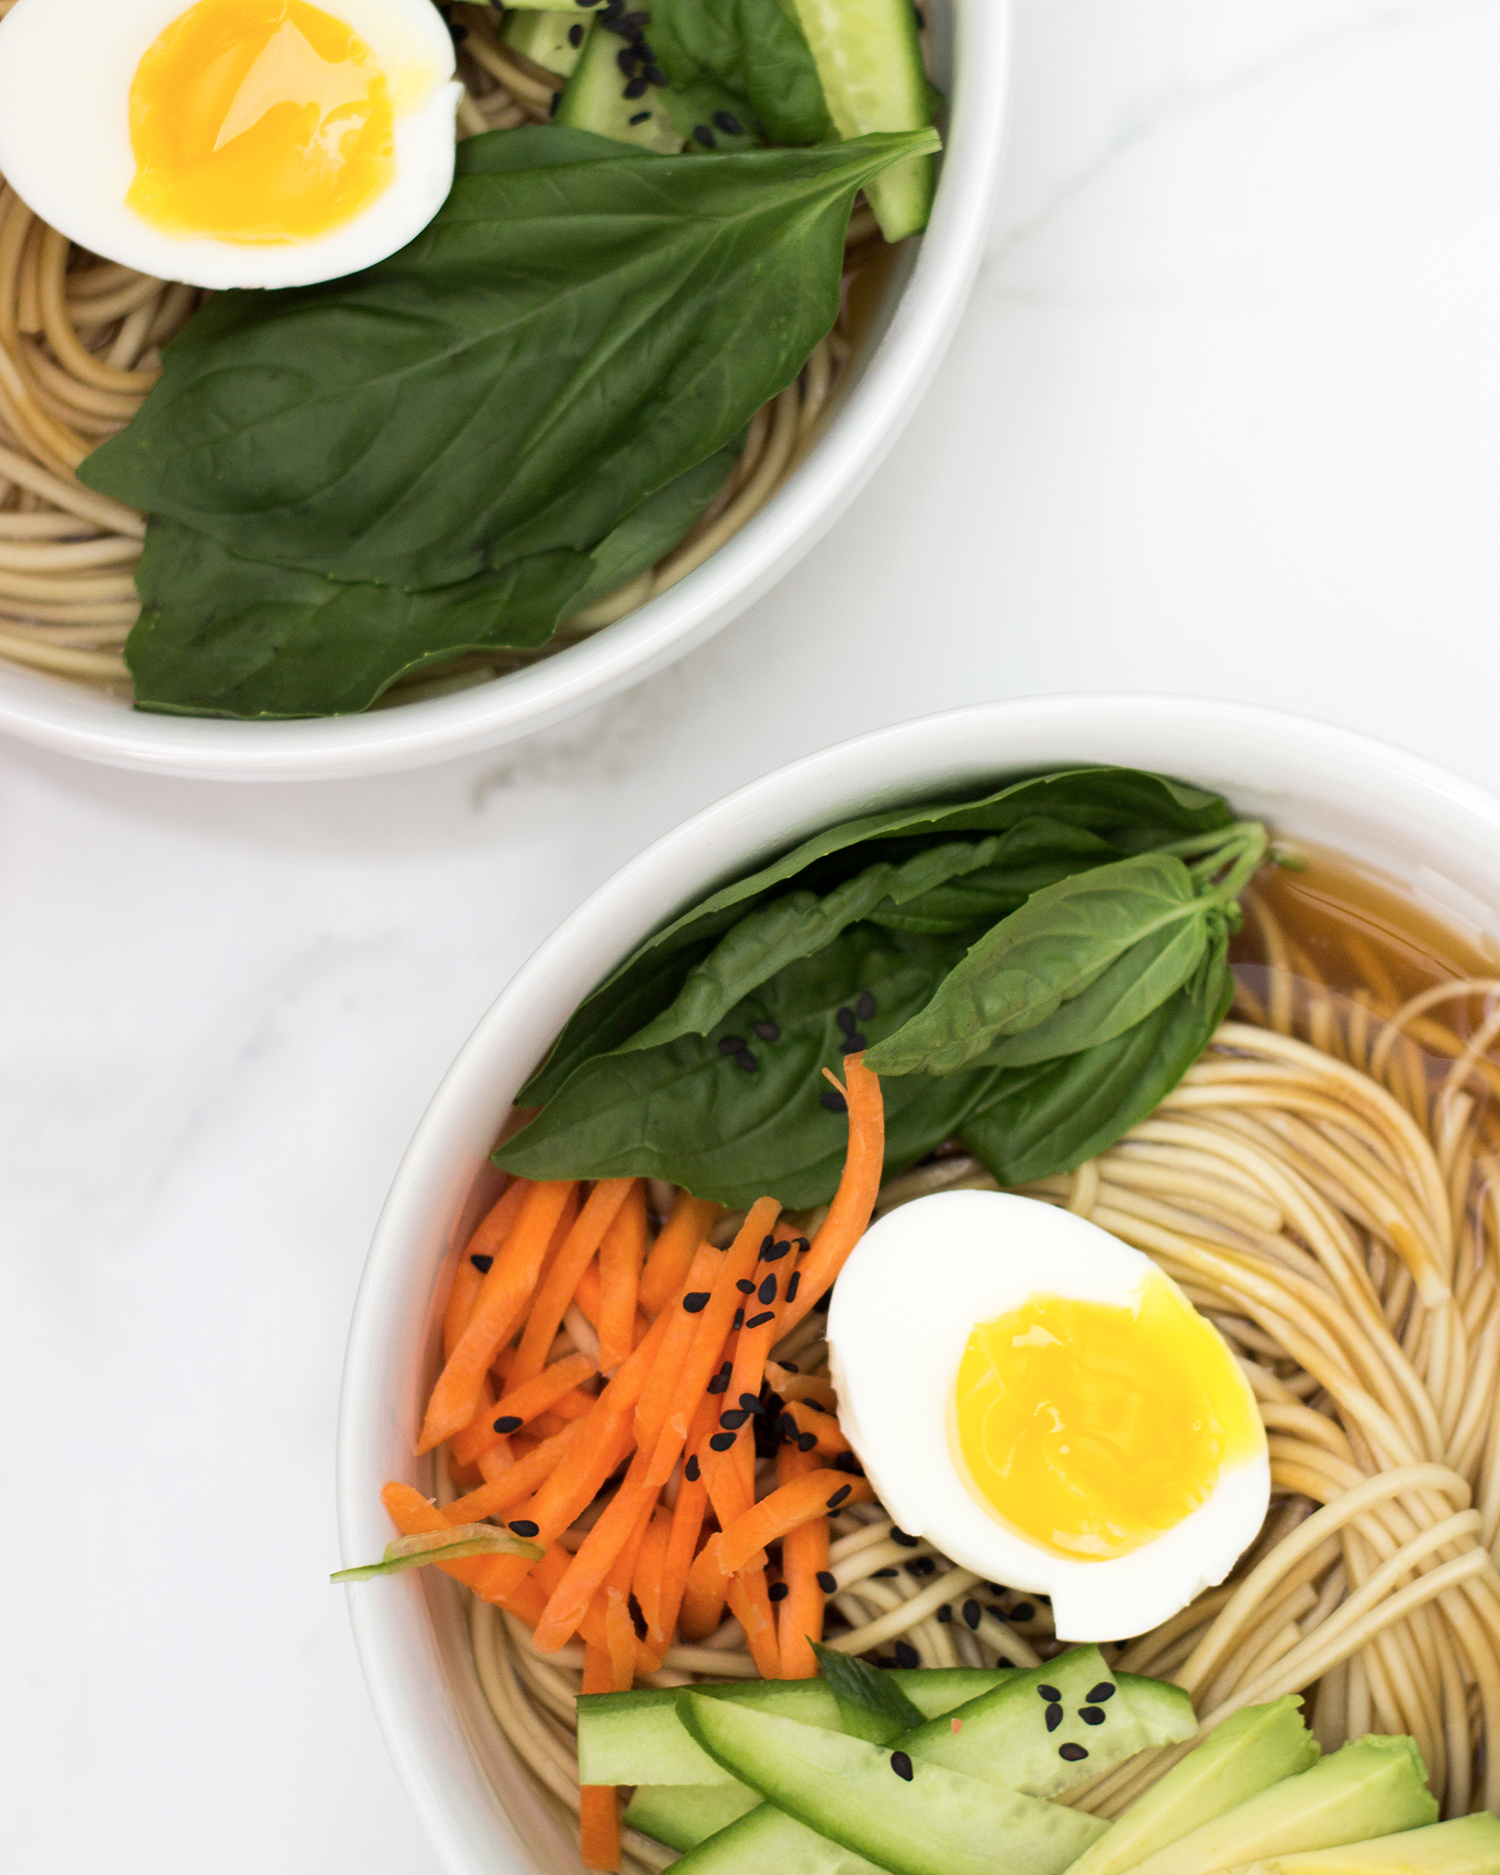 vegetarian-ramen-noodle-soup-simple-easy-homemade-livvyland-blog-austin-lifestyle-blogger-recipe-idea-2